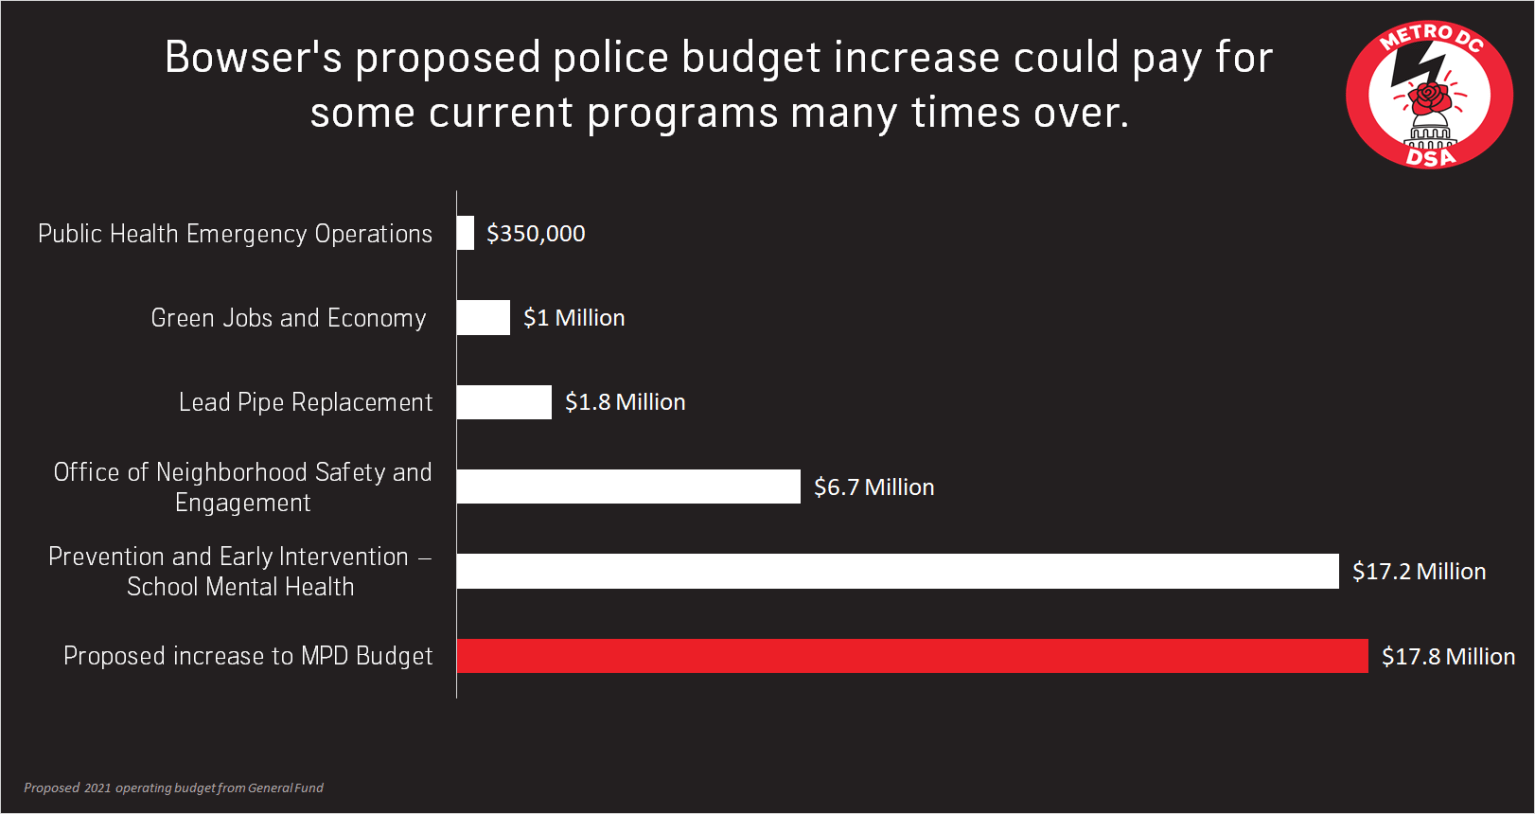 Bowser's proposed police budget increase could pay for some current programs many times over. The proposed increase to DC police budget is 17.8 million, while the entire School Mental Health budget is 17.2 million, the Office of Neighborhood Safety is 6.7 million, the Lead Pipe Replacement program is 1.8 million, the Green Jobs program is 1 million, and Public Health Emergency Operations is three hundred and fifty thousand.